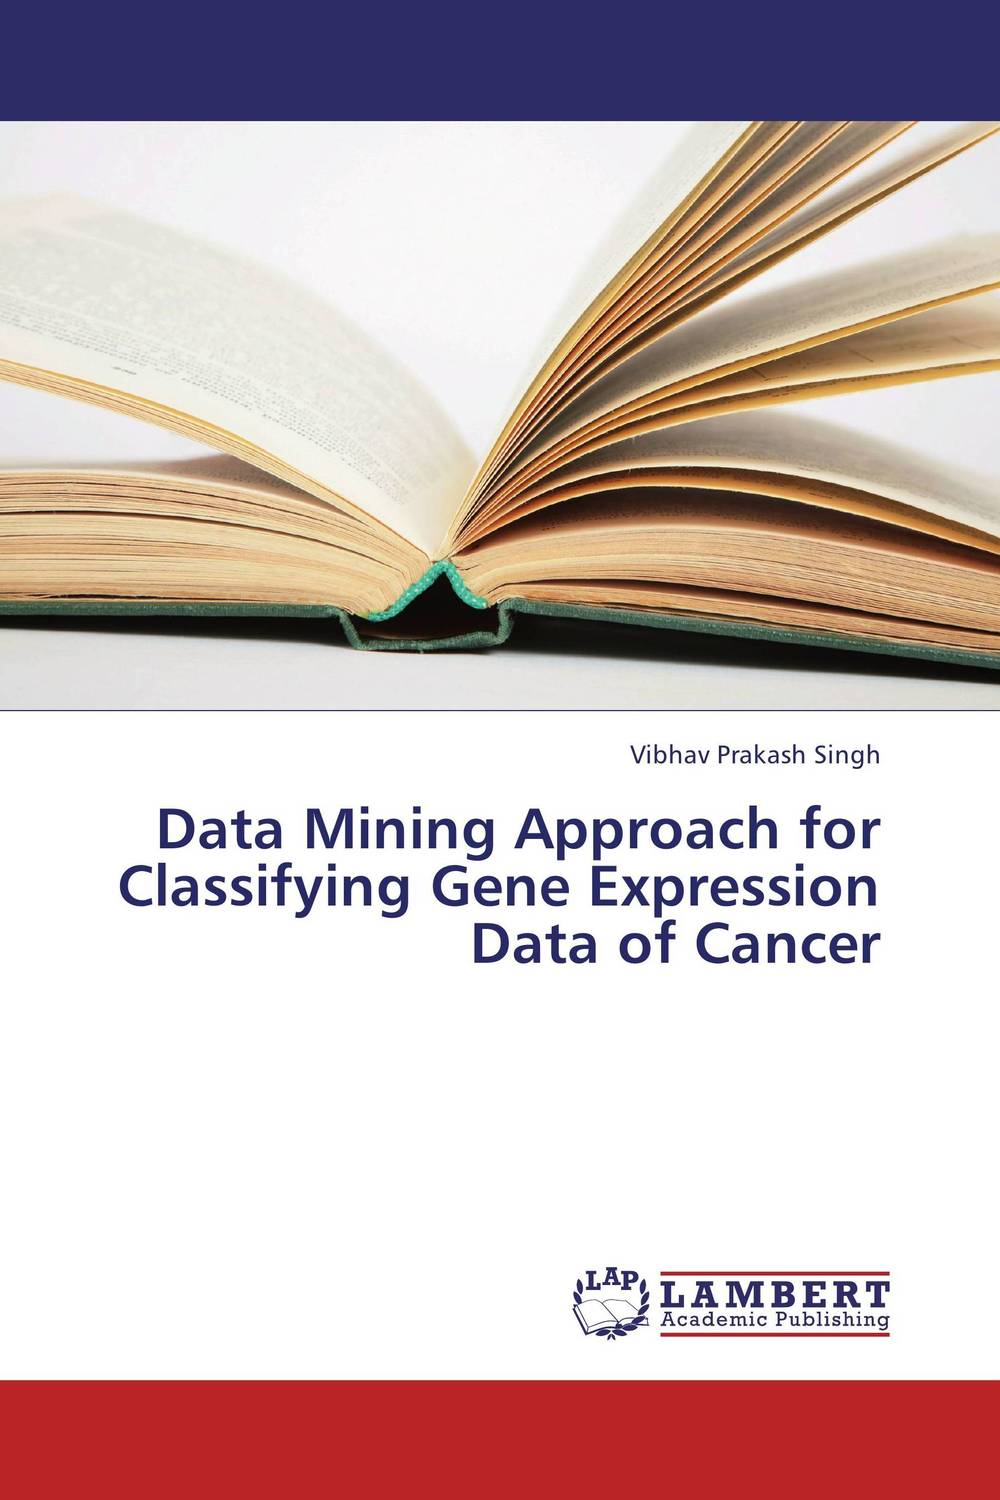 Data Mining Approach for Classifying Gene Expression Data of Cancer christos p kitsos cancer bioassays a statistical approach